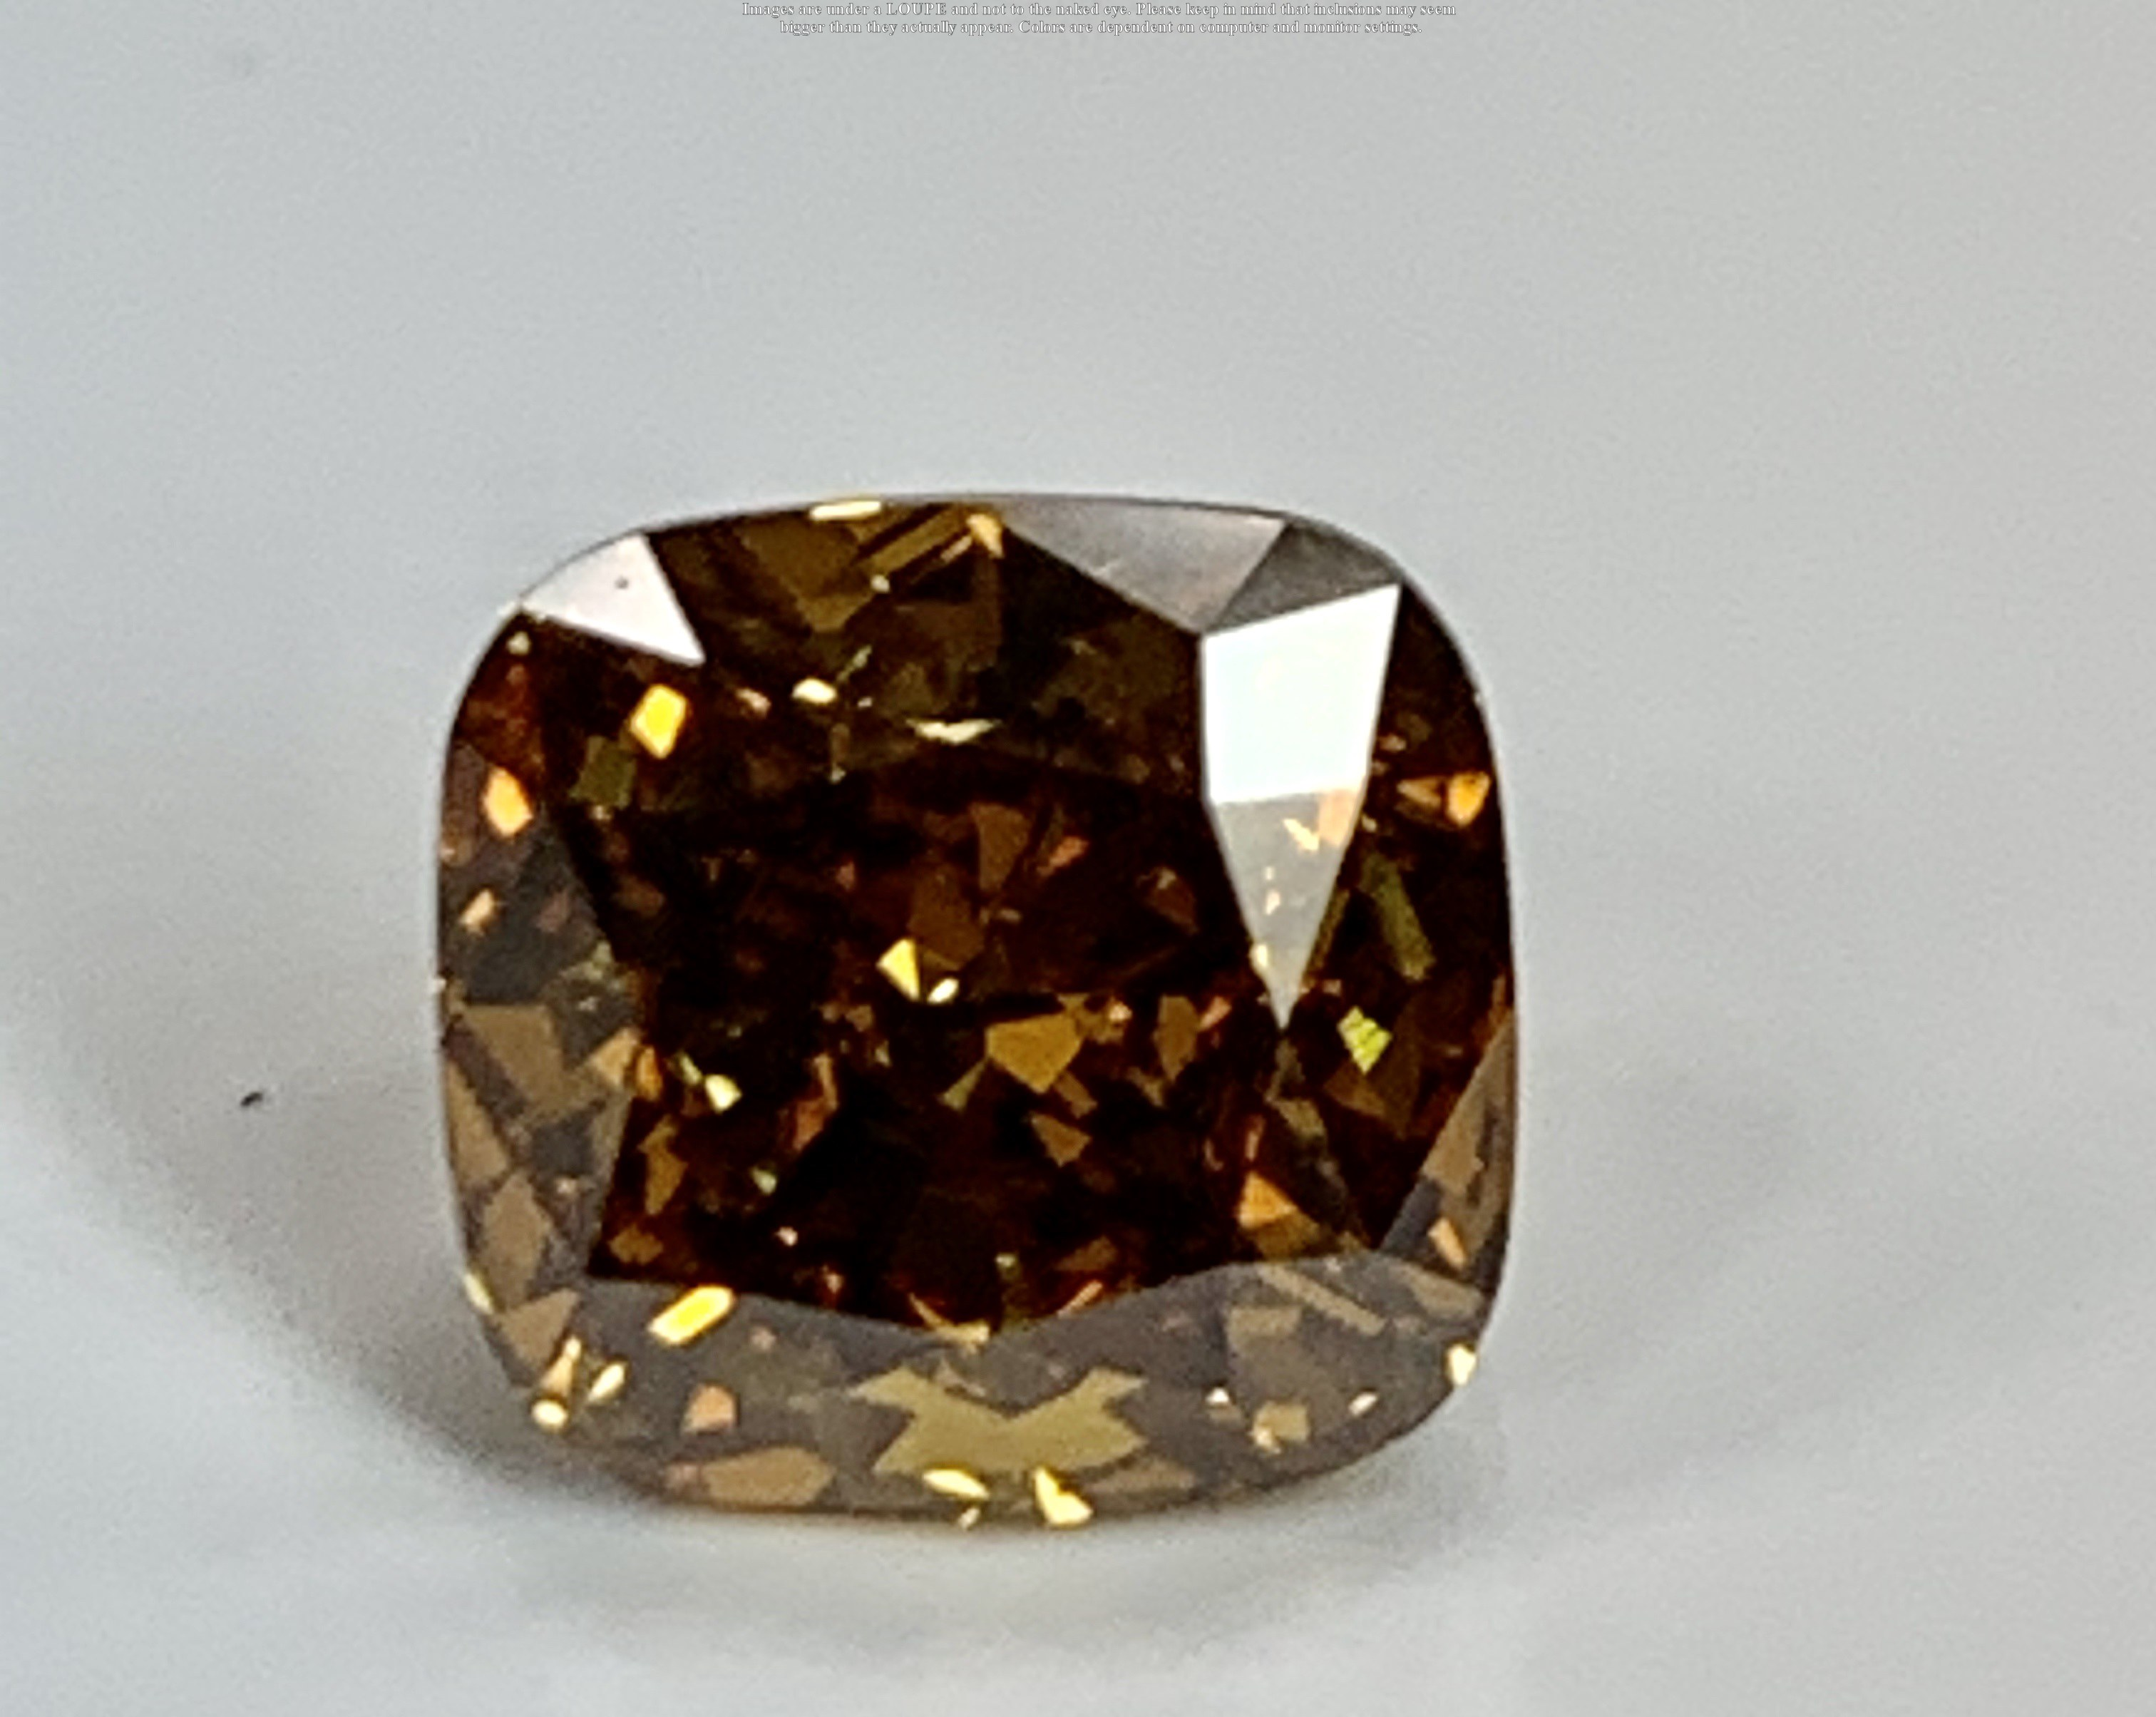 Gumer & Co Jewelry - Diamond Image - C03333